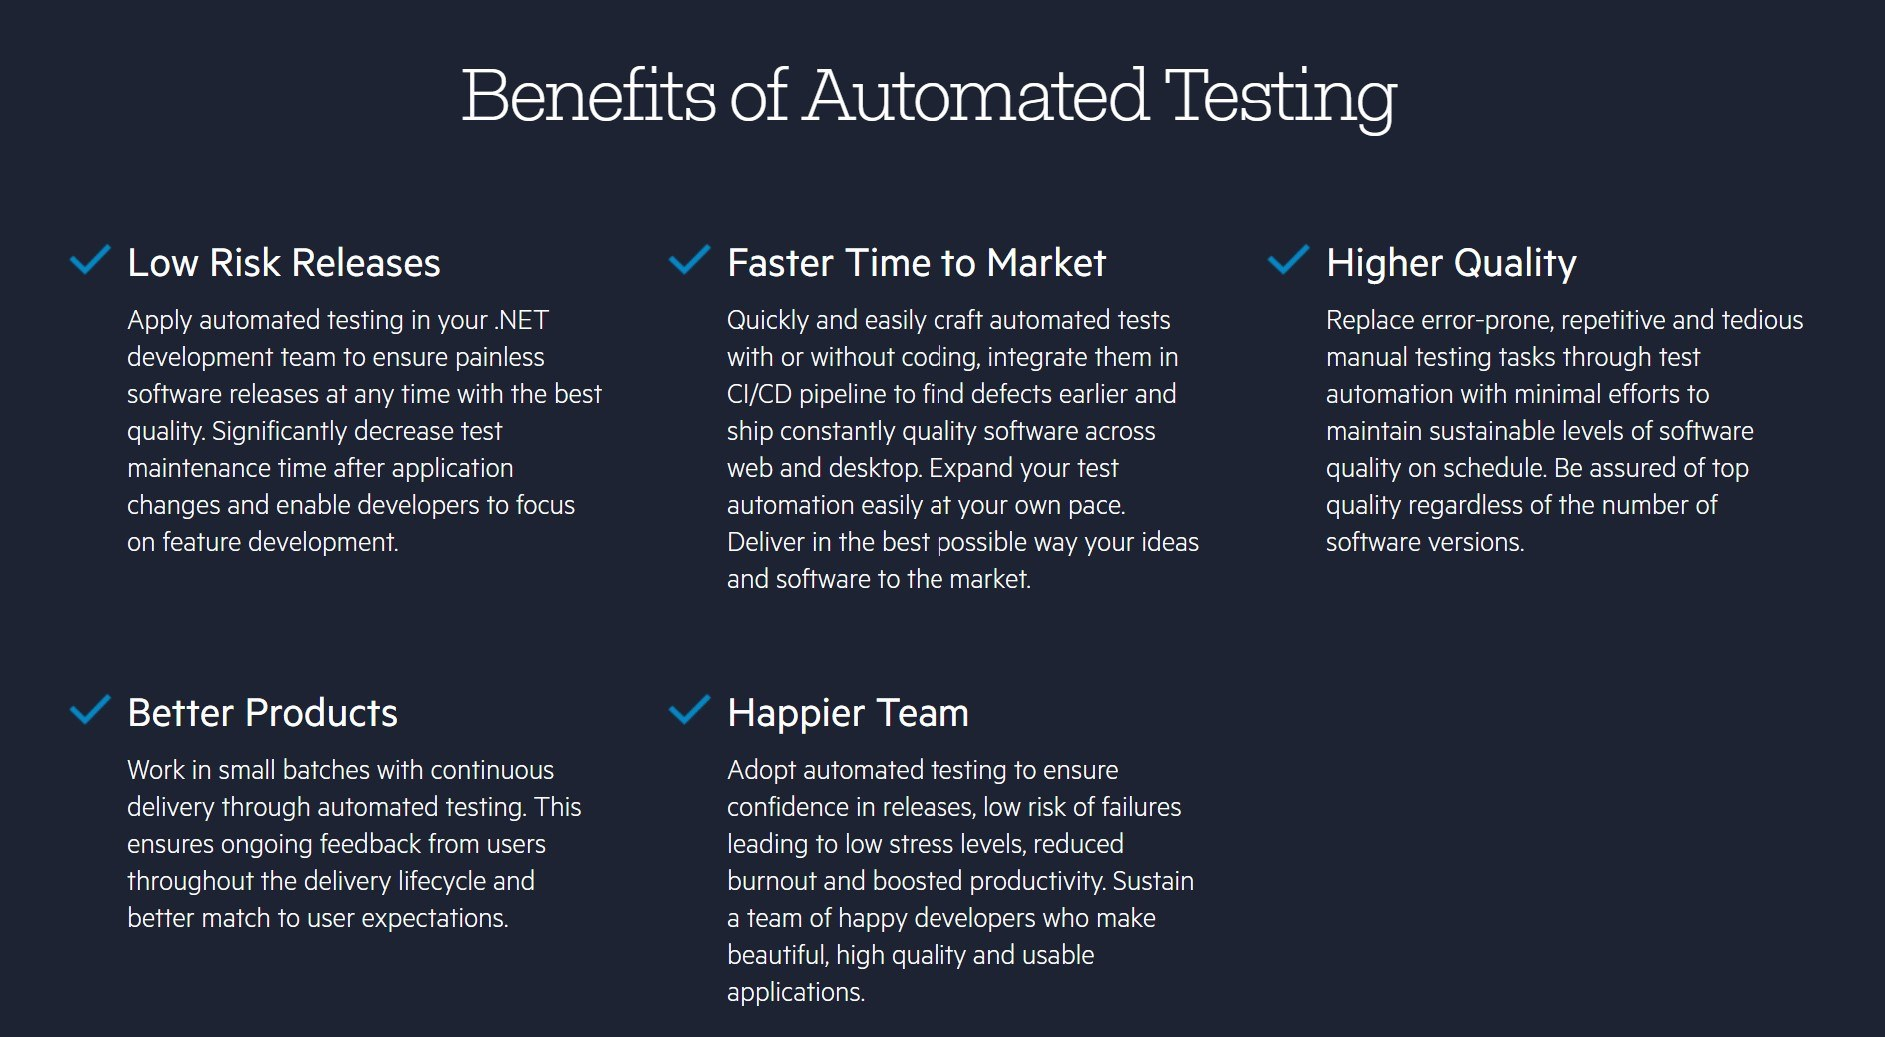 Benefits of automated testing: low risk releases, faster time to market, higher quality, better products, happier team